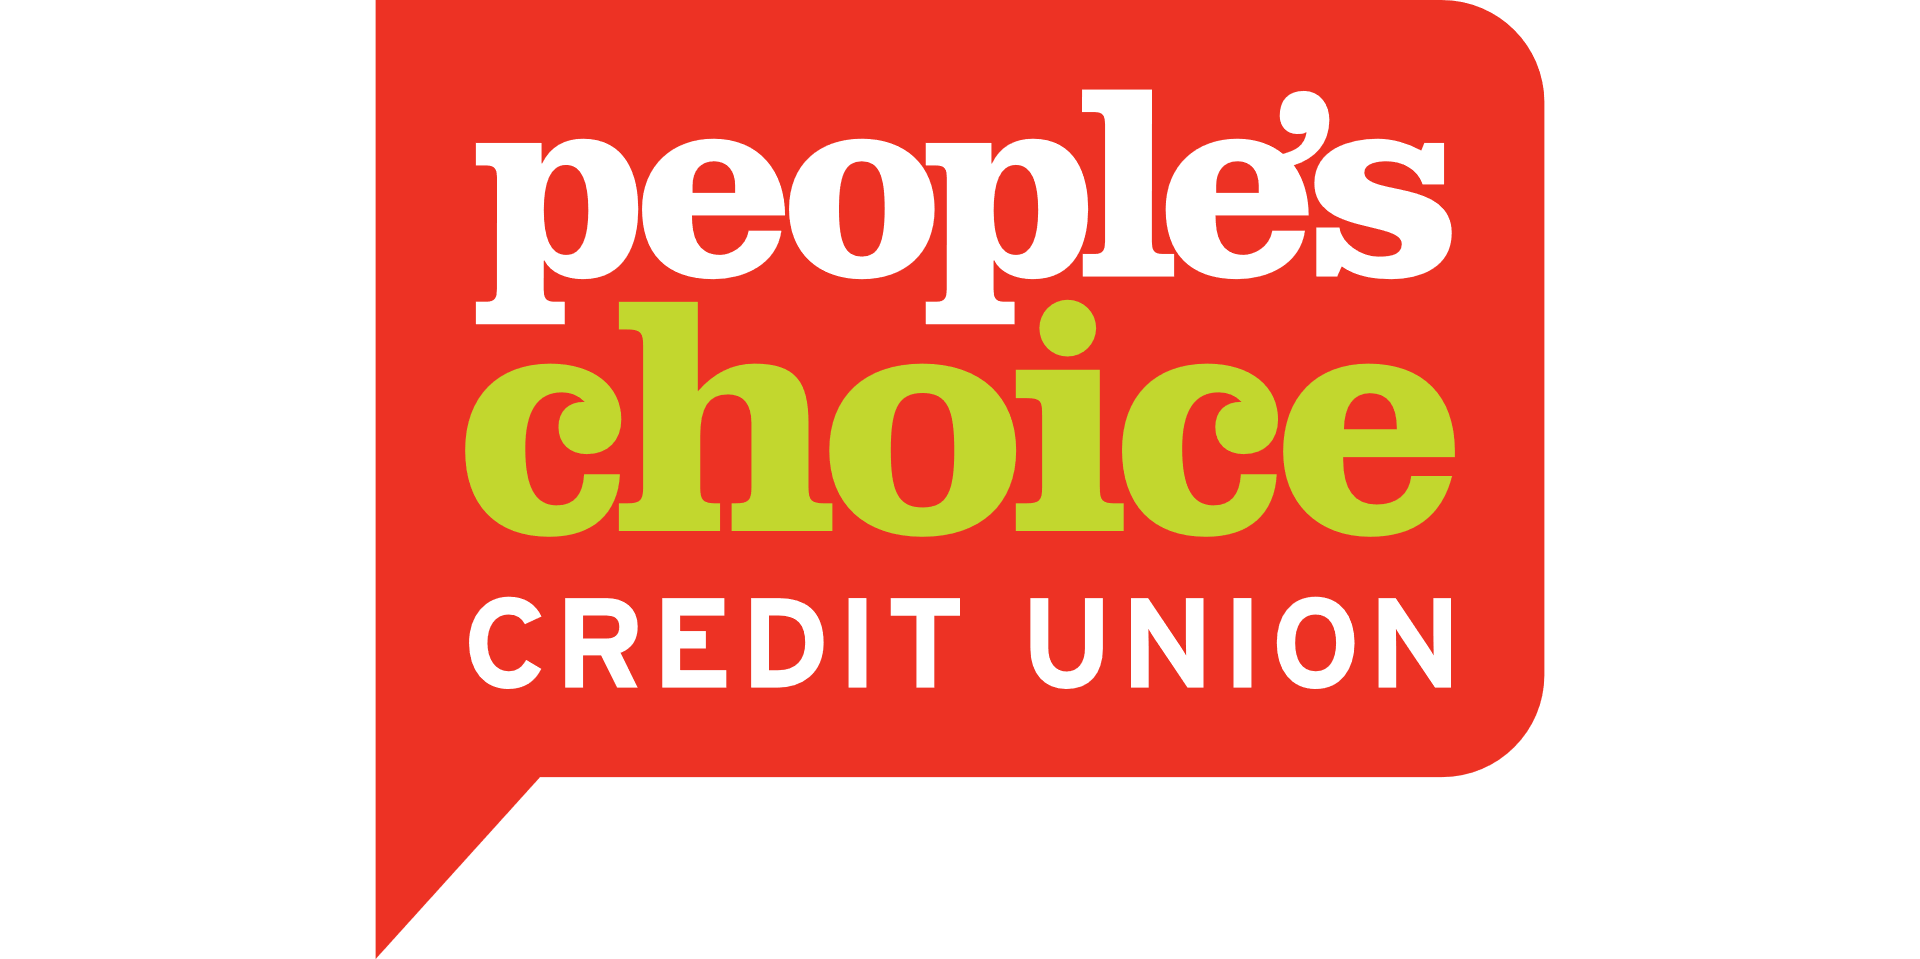 People's Choice Credit Union - Elizabeth, SA 5112 - (01) 3118 1182 | ShowMeLocal.com